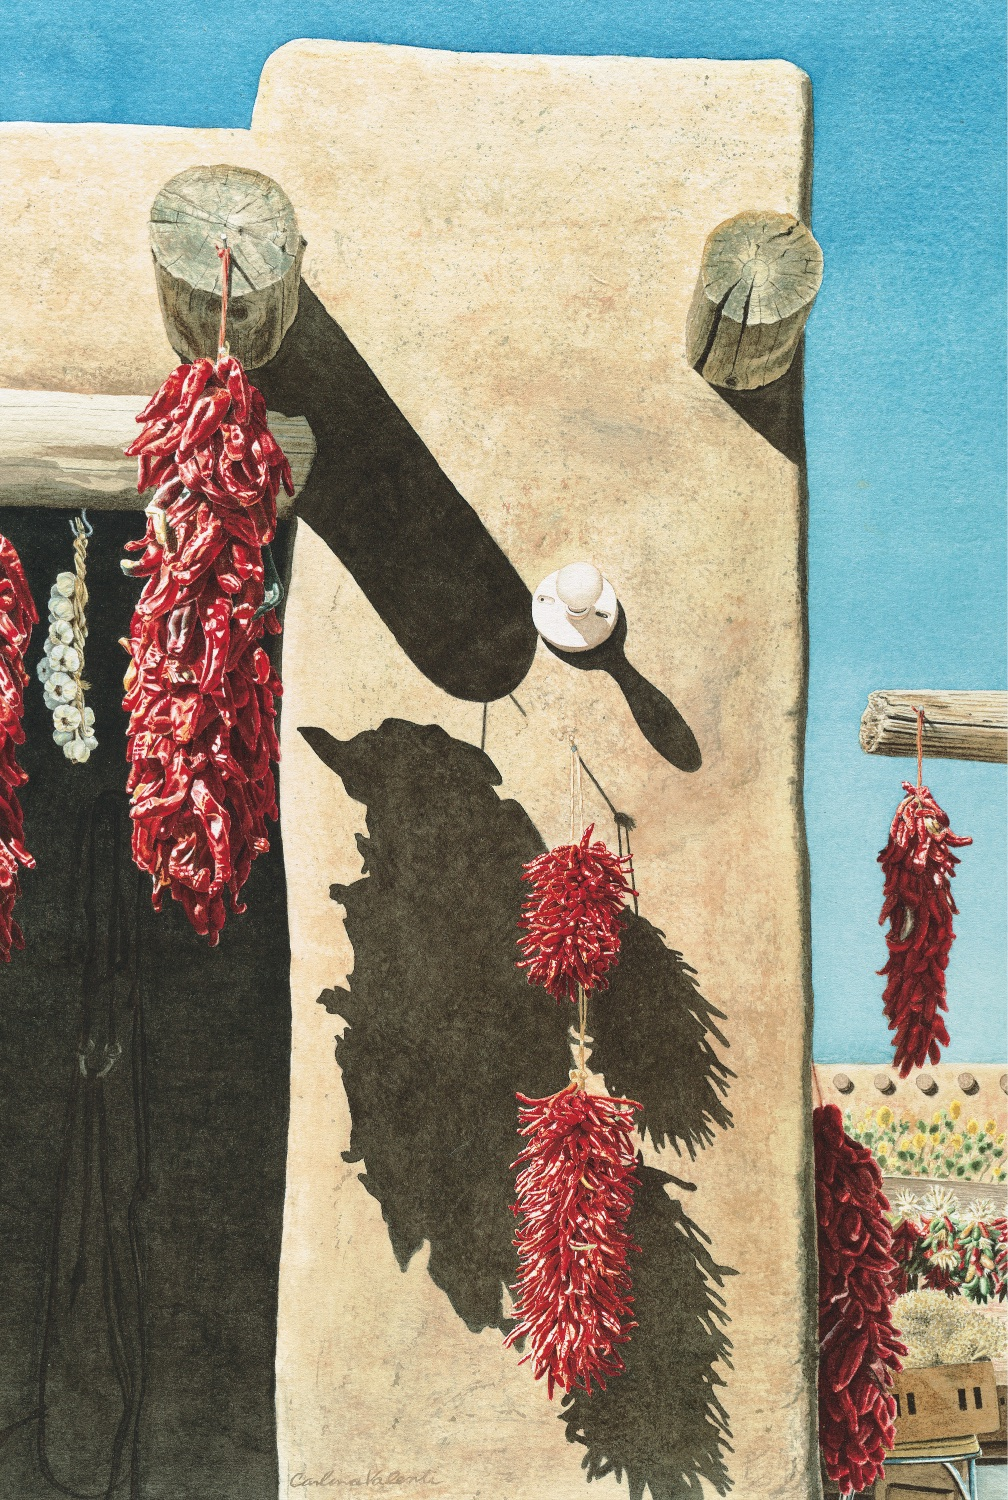 Drying Chiles